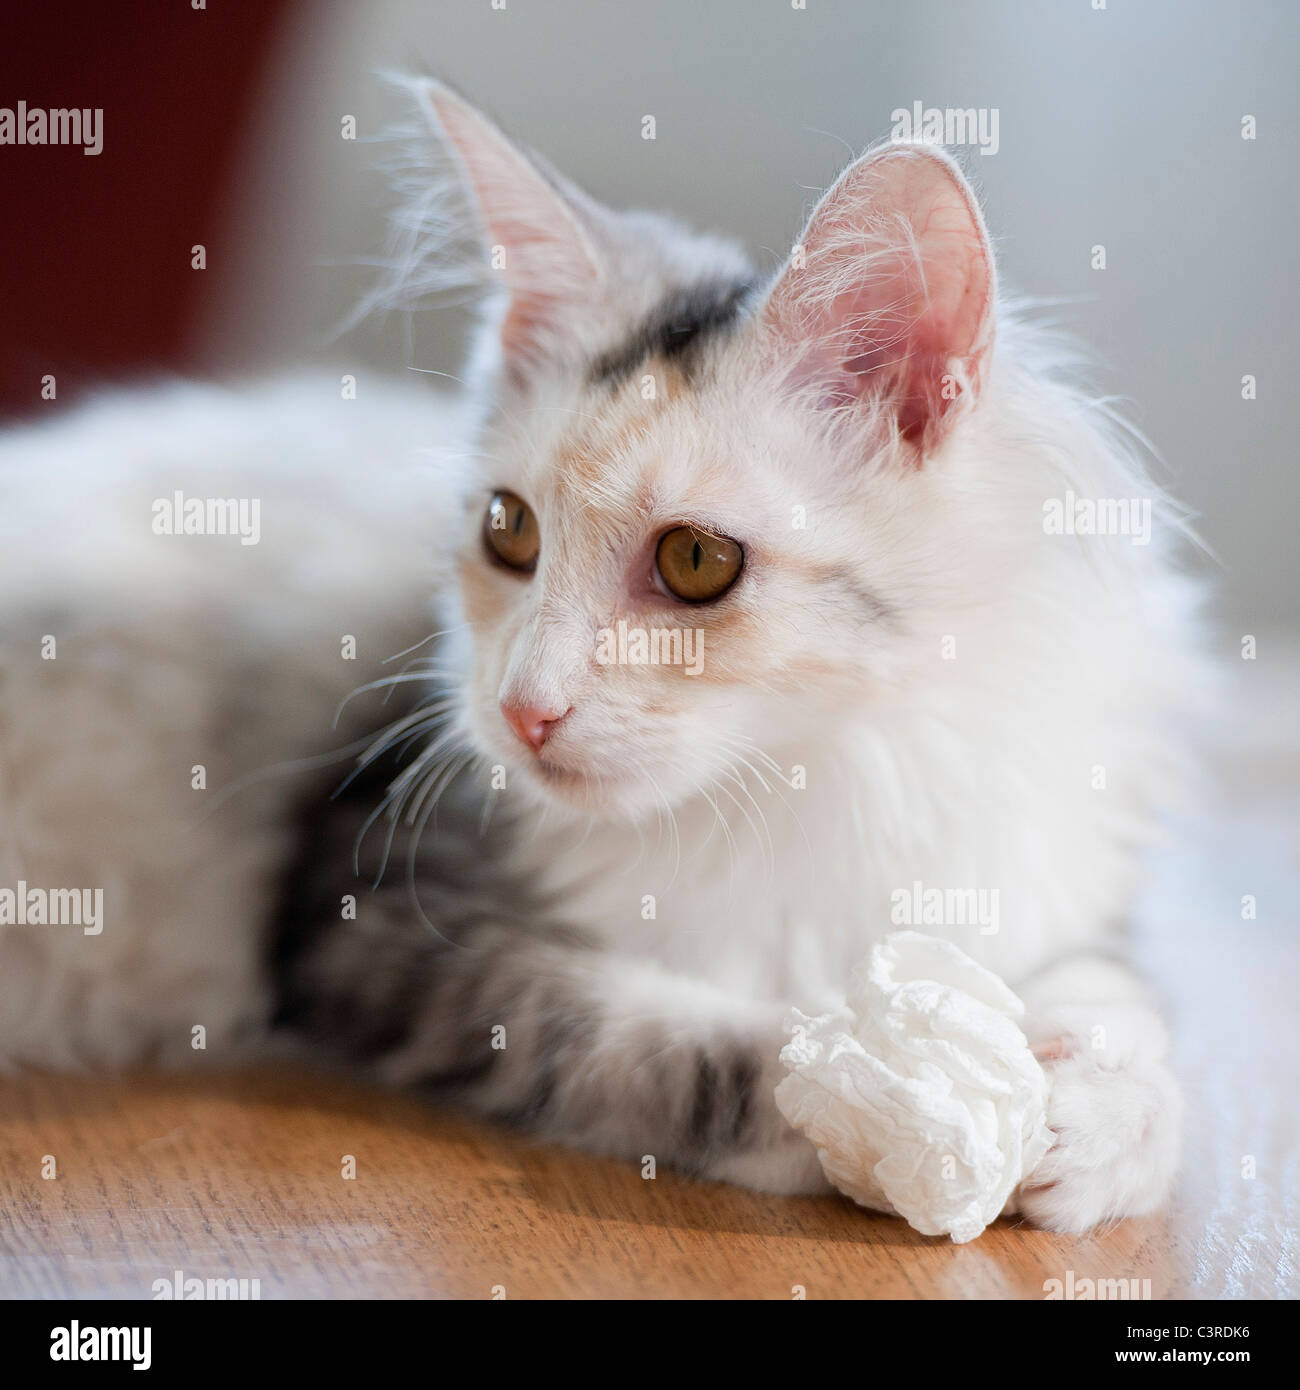 White cat laying on a table with a paper wad in her paws and looking left - Stock Image